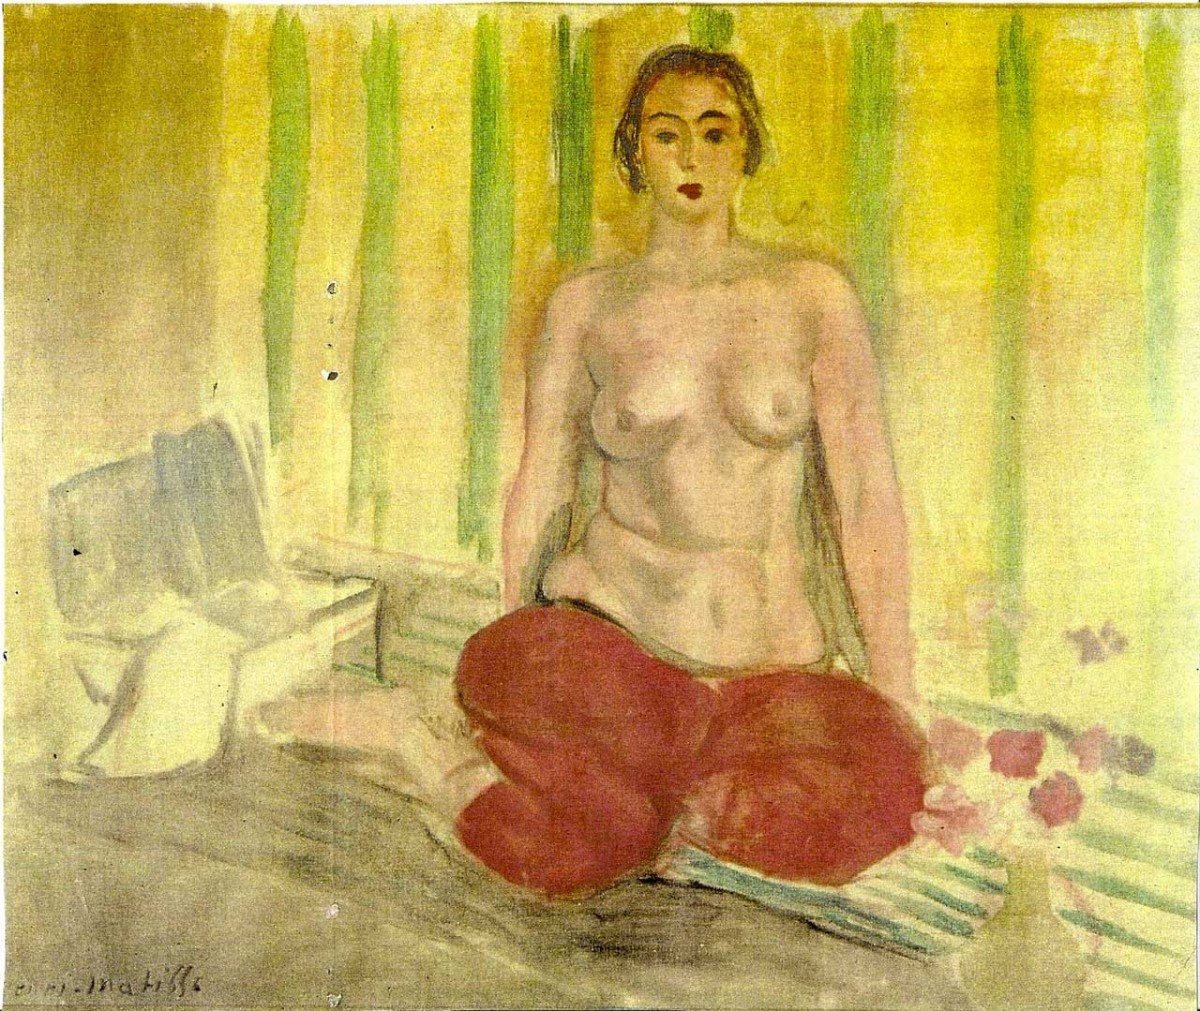 Henri Matisse, Odalisque in Red Pants, 1925.